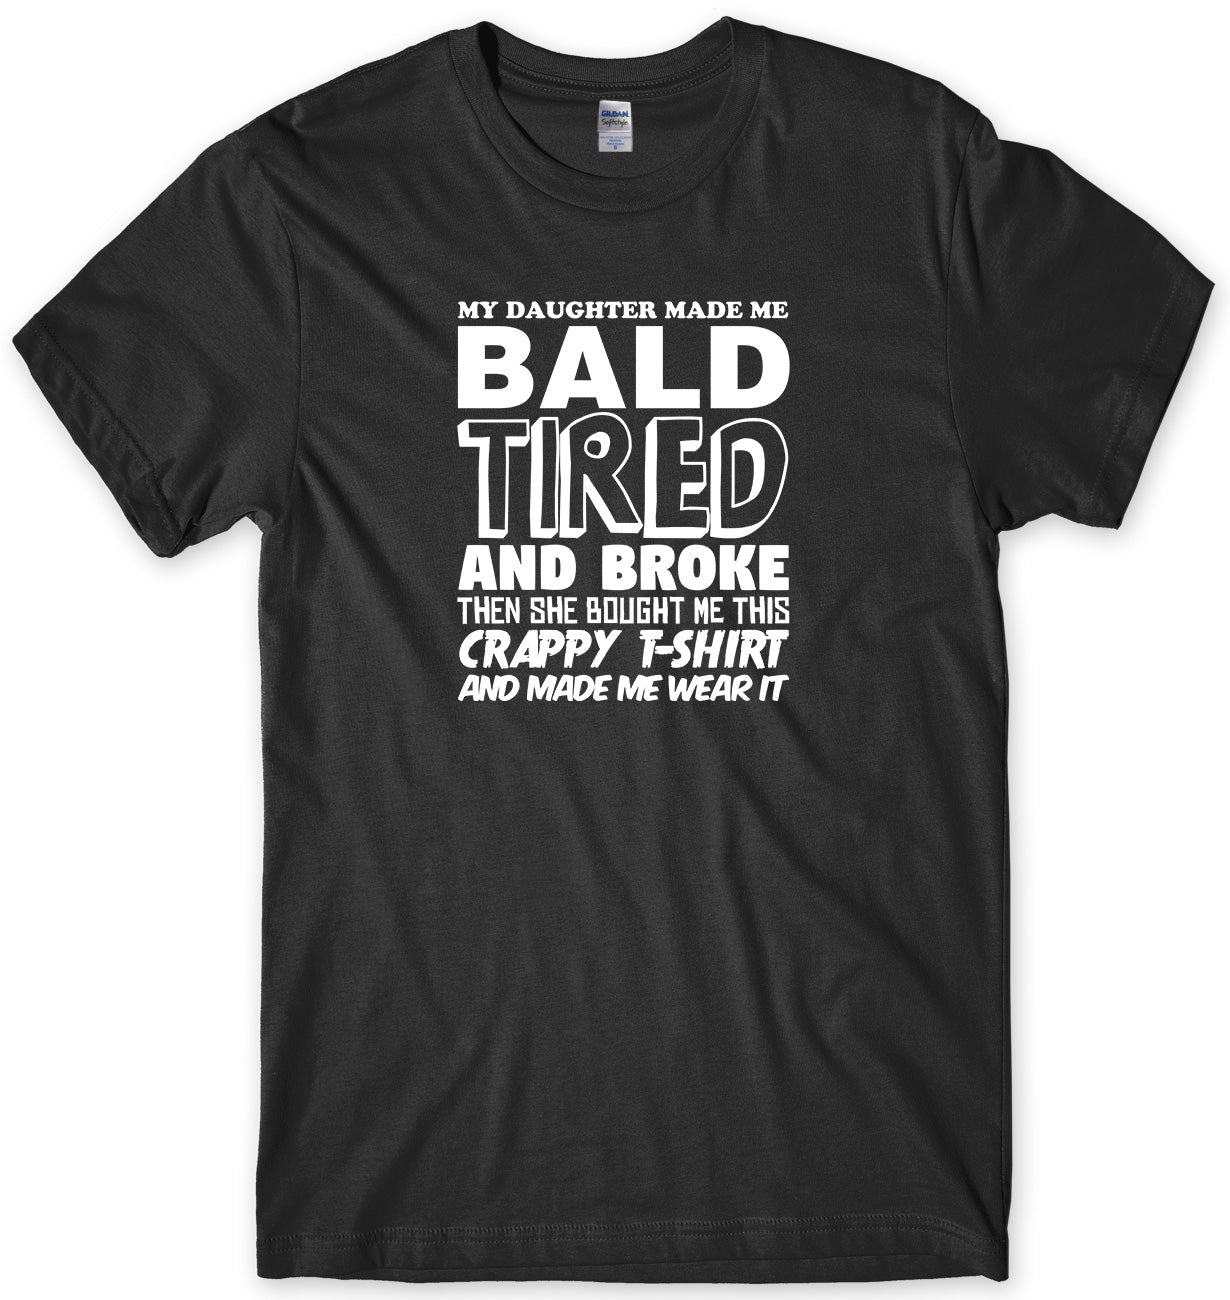 MY DAUGHTER MADE ME BALD TIRED AND BROKE MENS FUNNY UNISEX T-SHIRT